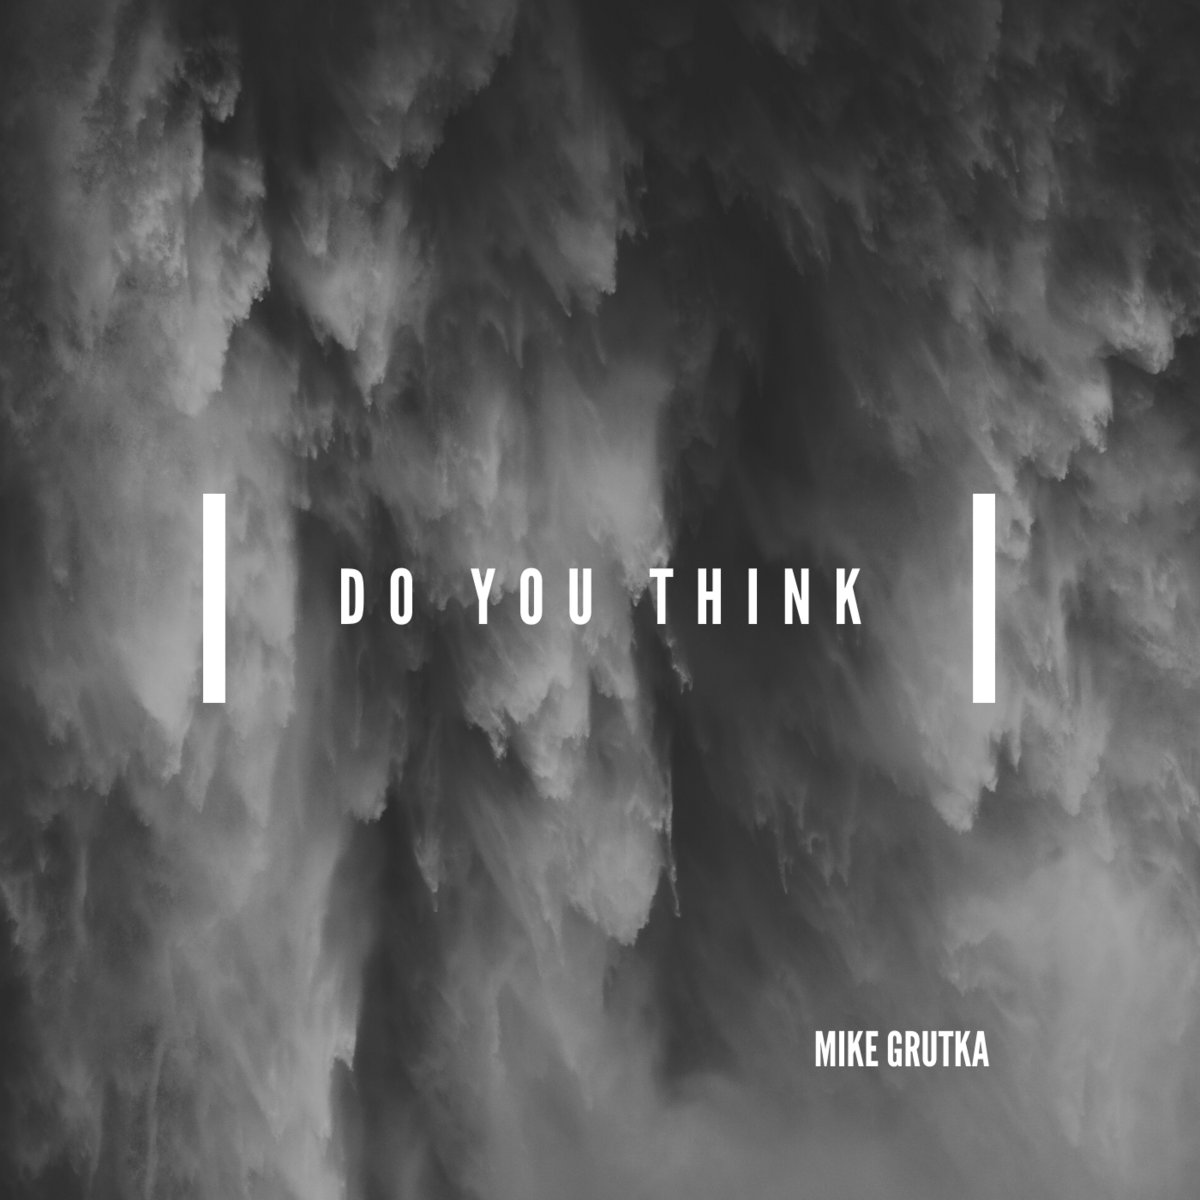 Do You Think by Mike Grutka